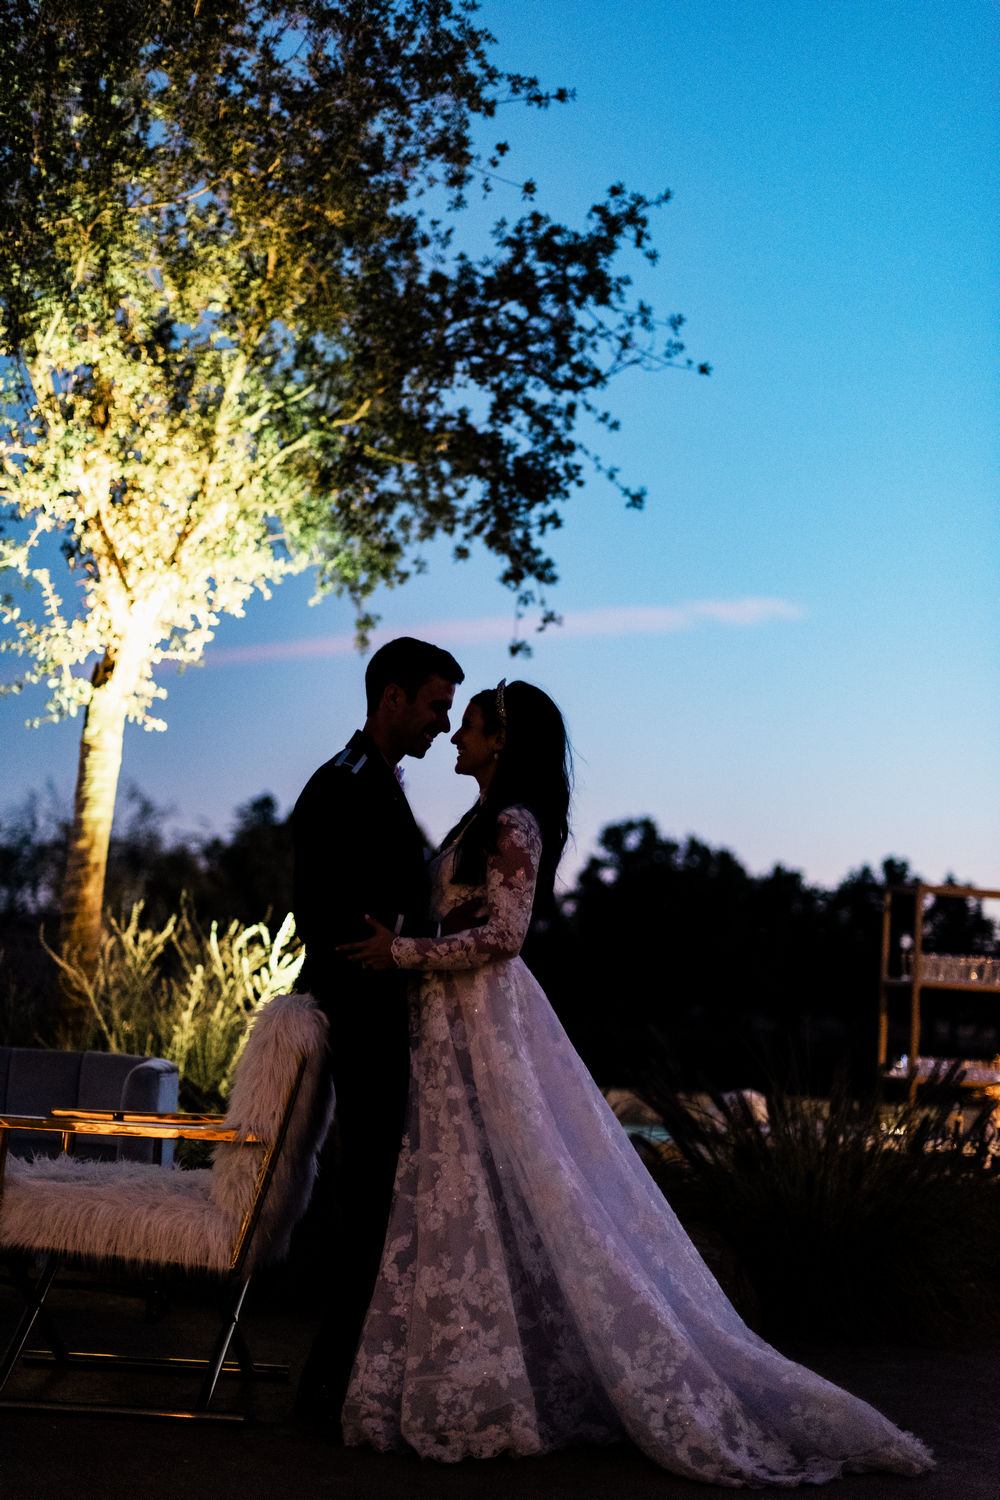 wedding-paso-robles-rava-wines-alexa-taylor-2250_astc6082.jpg